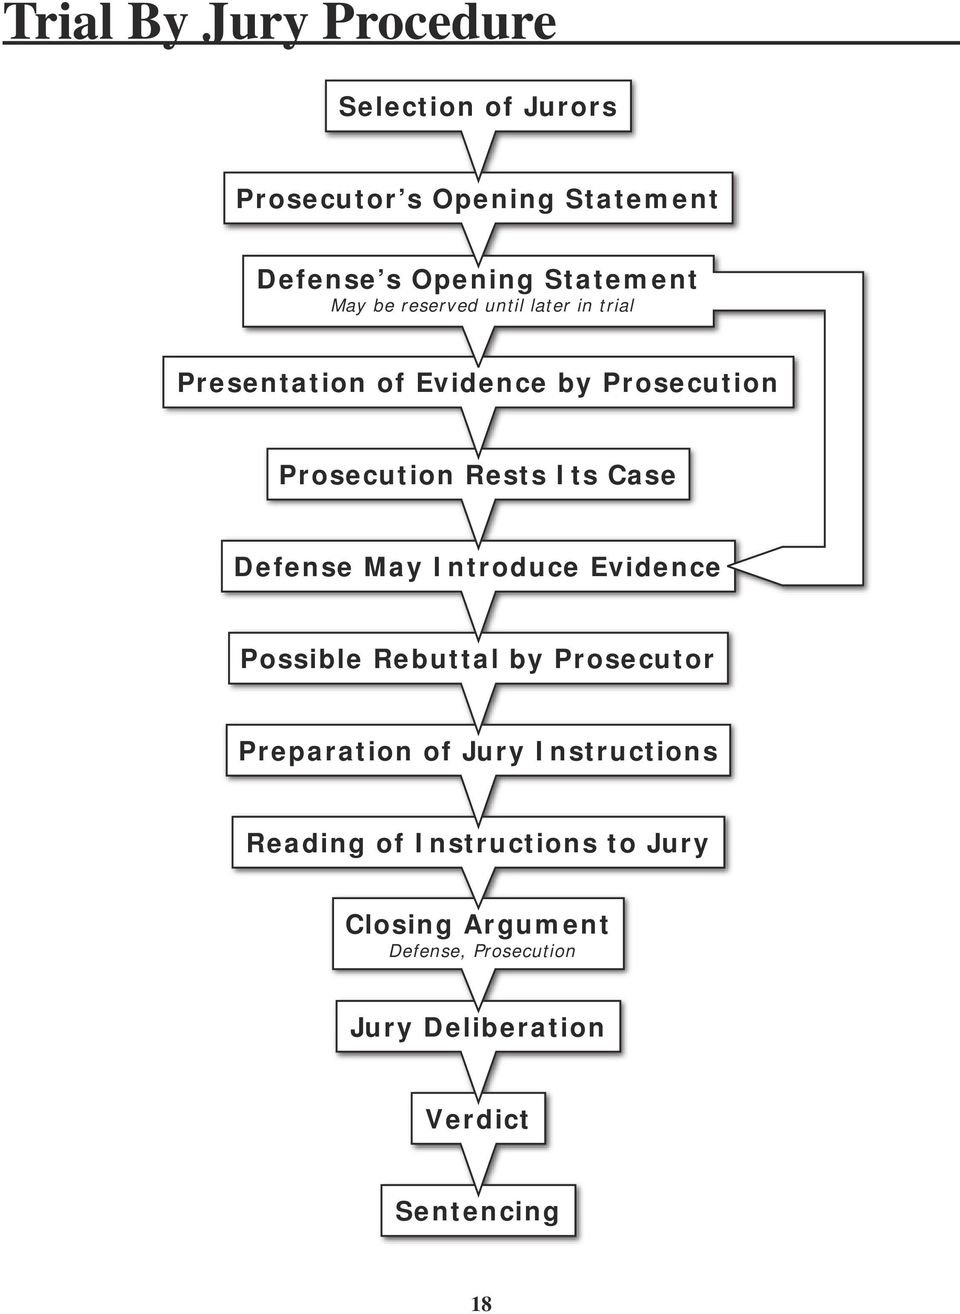 Case Defense May Introduce Evidence Possible Rebuttal by Prosecutor Preparation of Jury Instructions